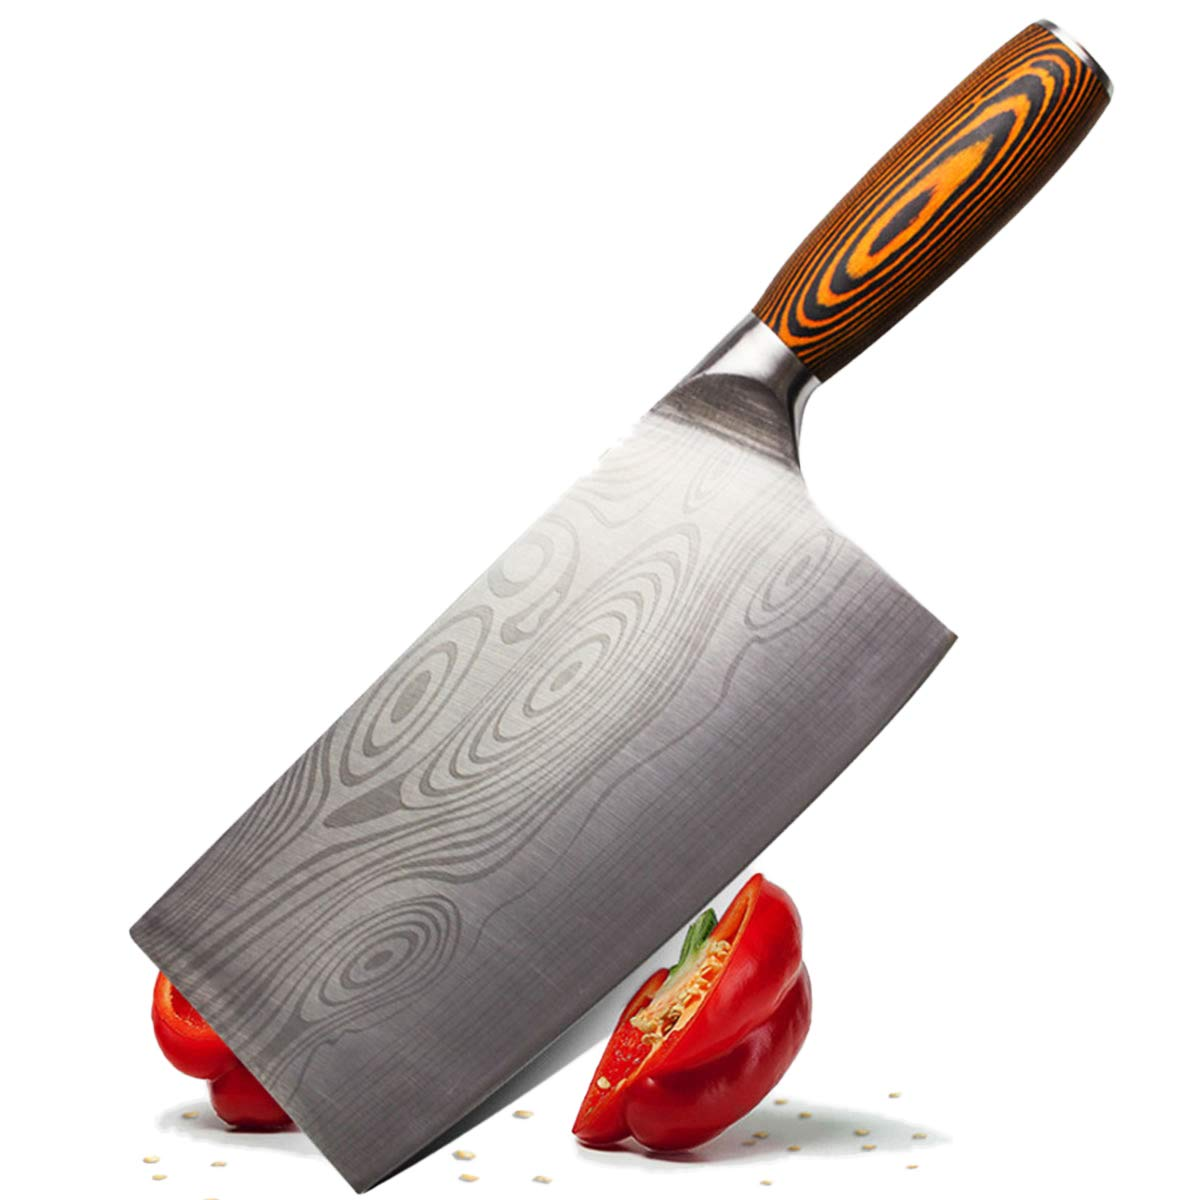 YIJIA 8 Inch Chinese Chef's Knife Stainless Steel Kitchen Cleaver Knife Chopper Butcher with Wooden Handle for Home and Restaurant by YIJIA